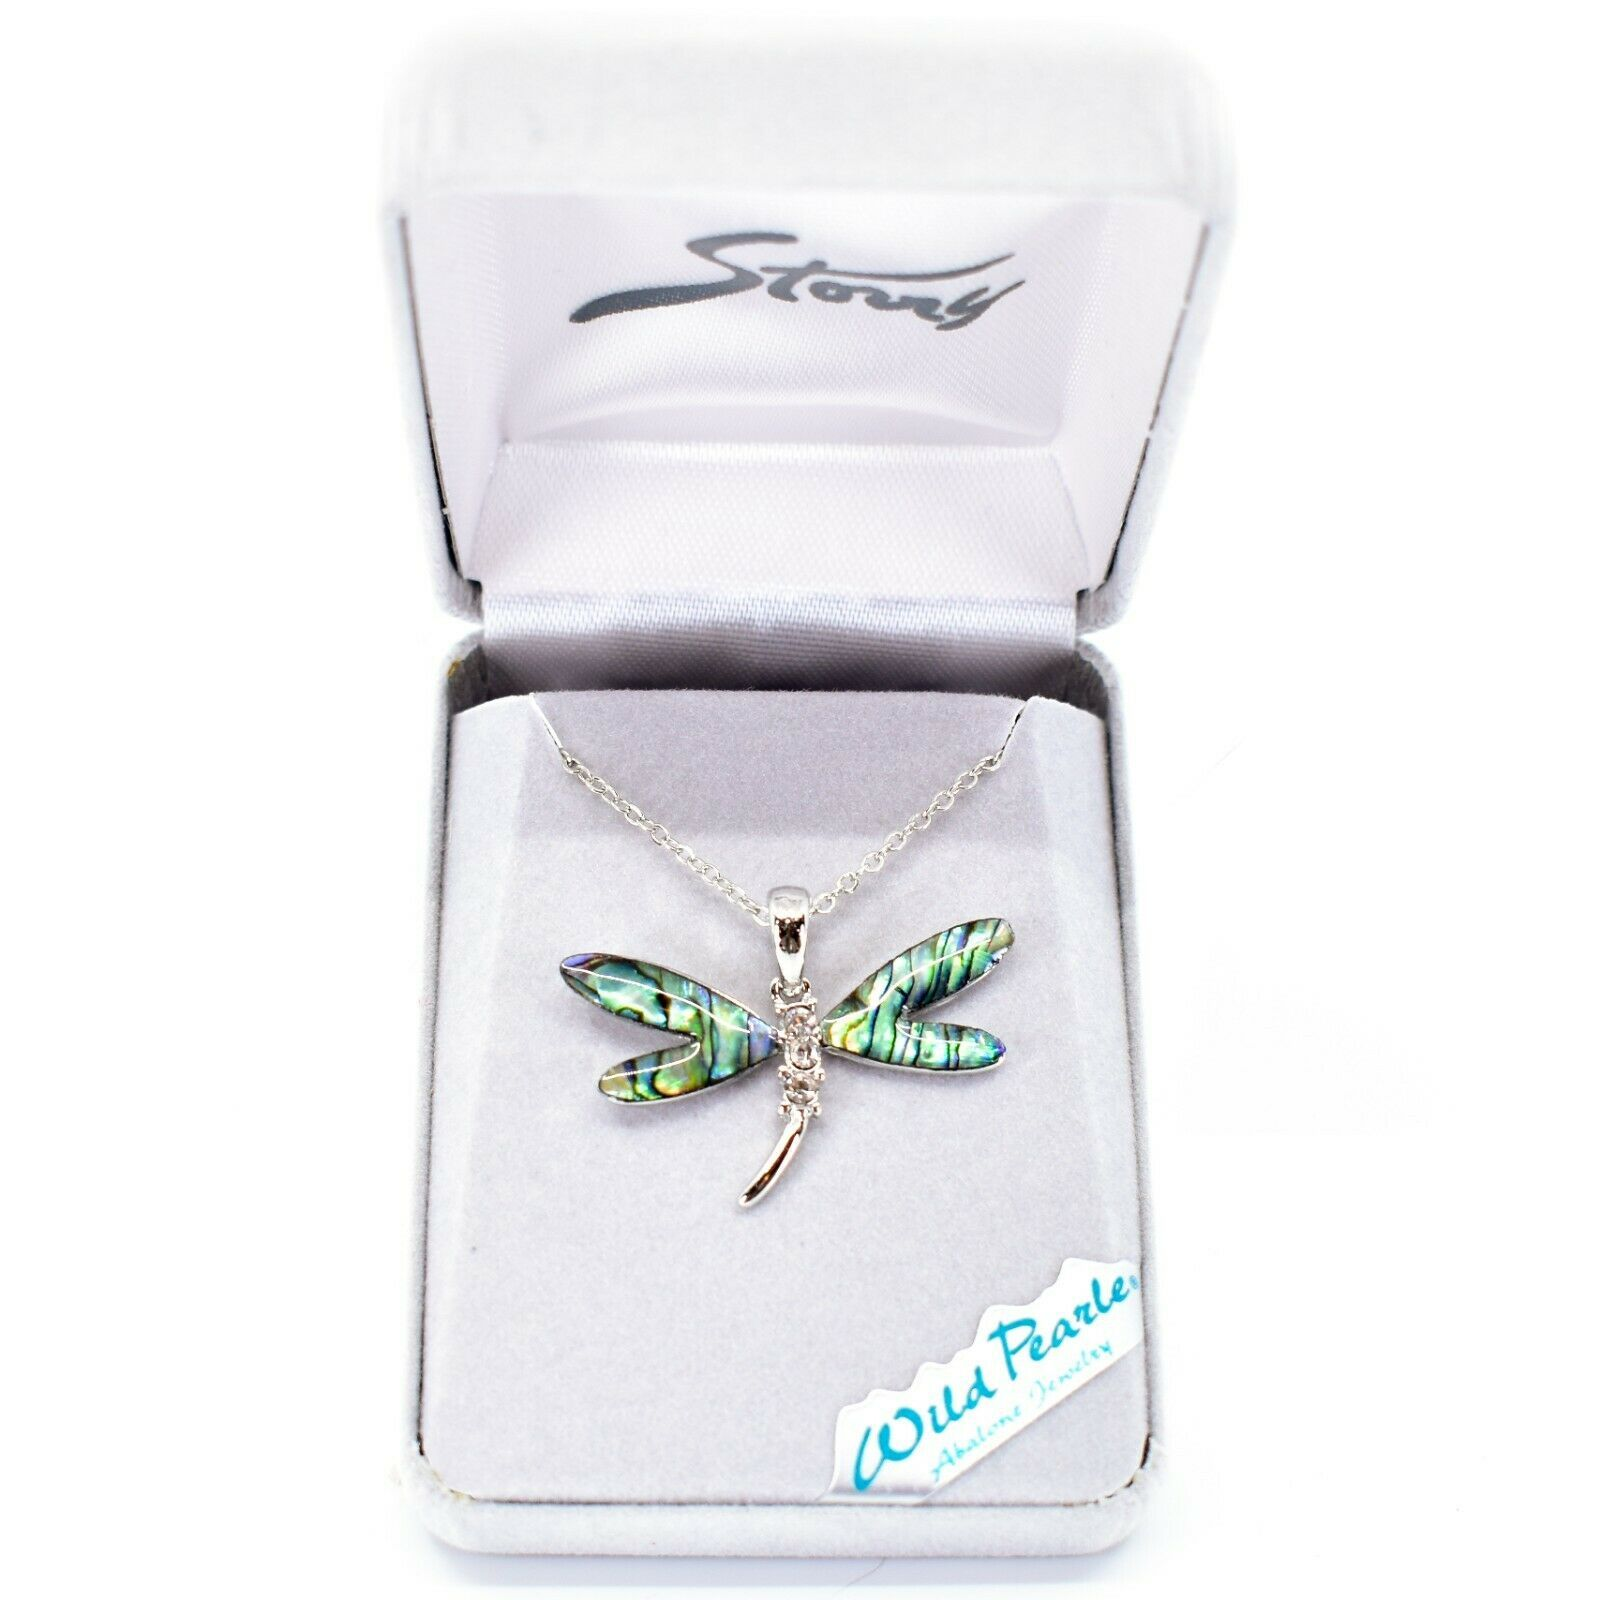 Storrs Wild Pearle Abalone Shell Crystal Dragonfly Pendant Silver Tone Necklace